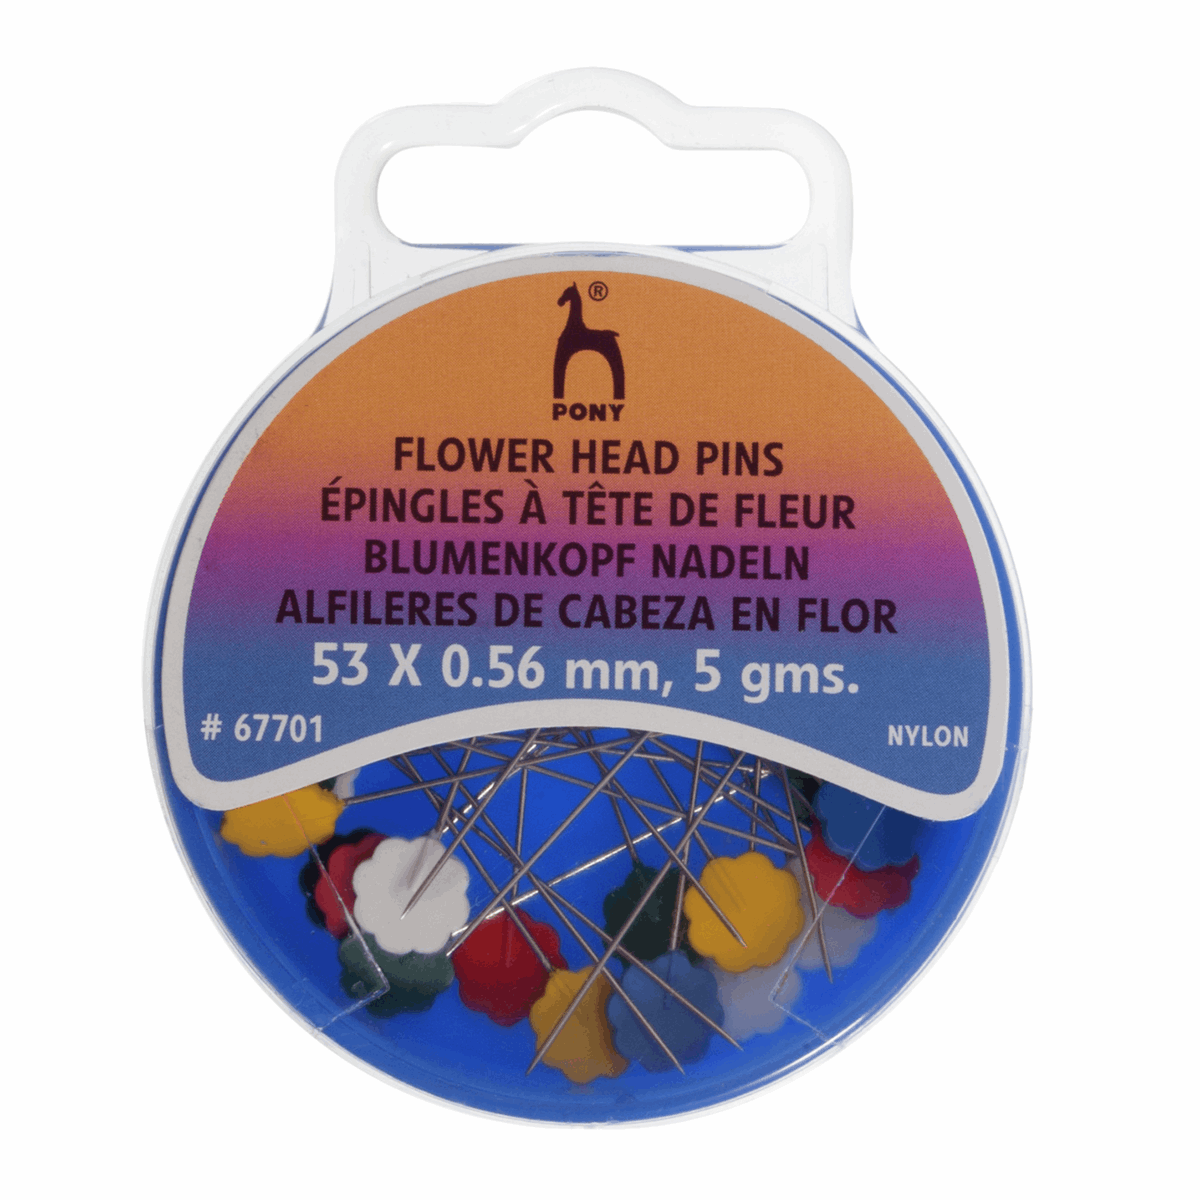 PONY Flower Head Pins